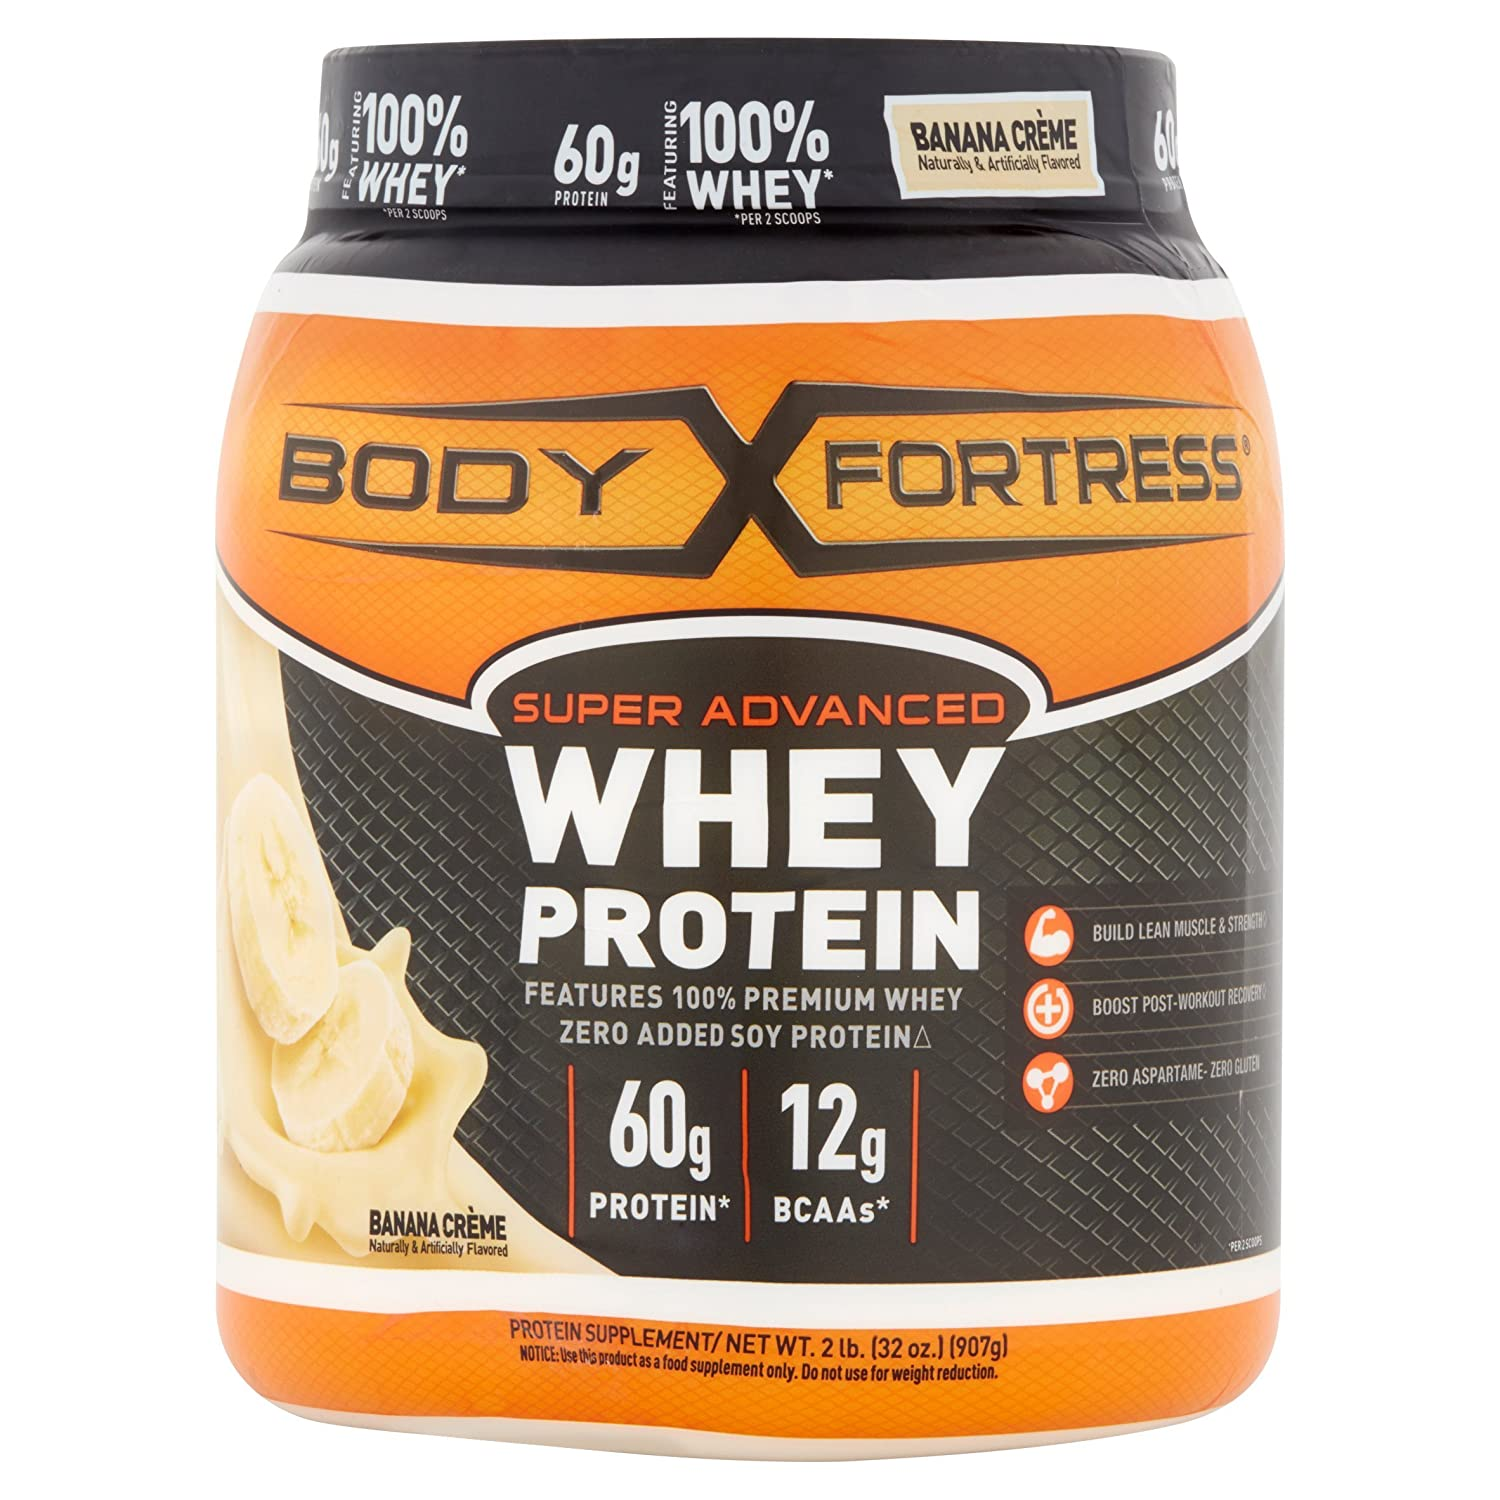 Body Fortress Super Advanced Whey Protein Powder, Banana Crème, 2 Pounds